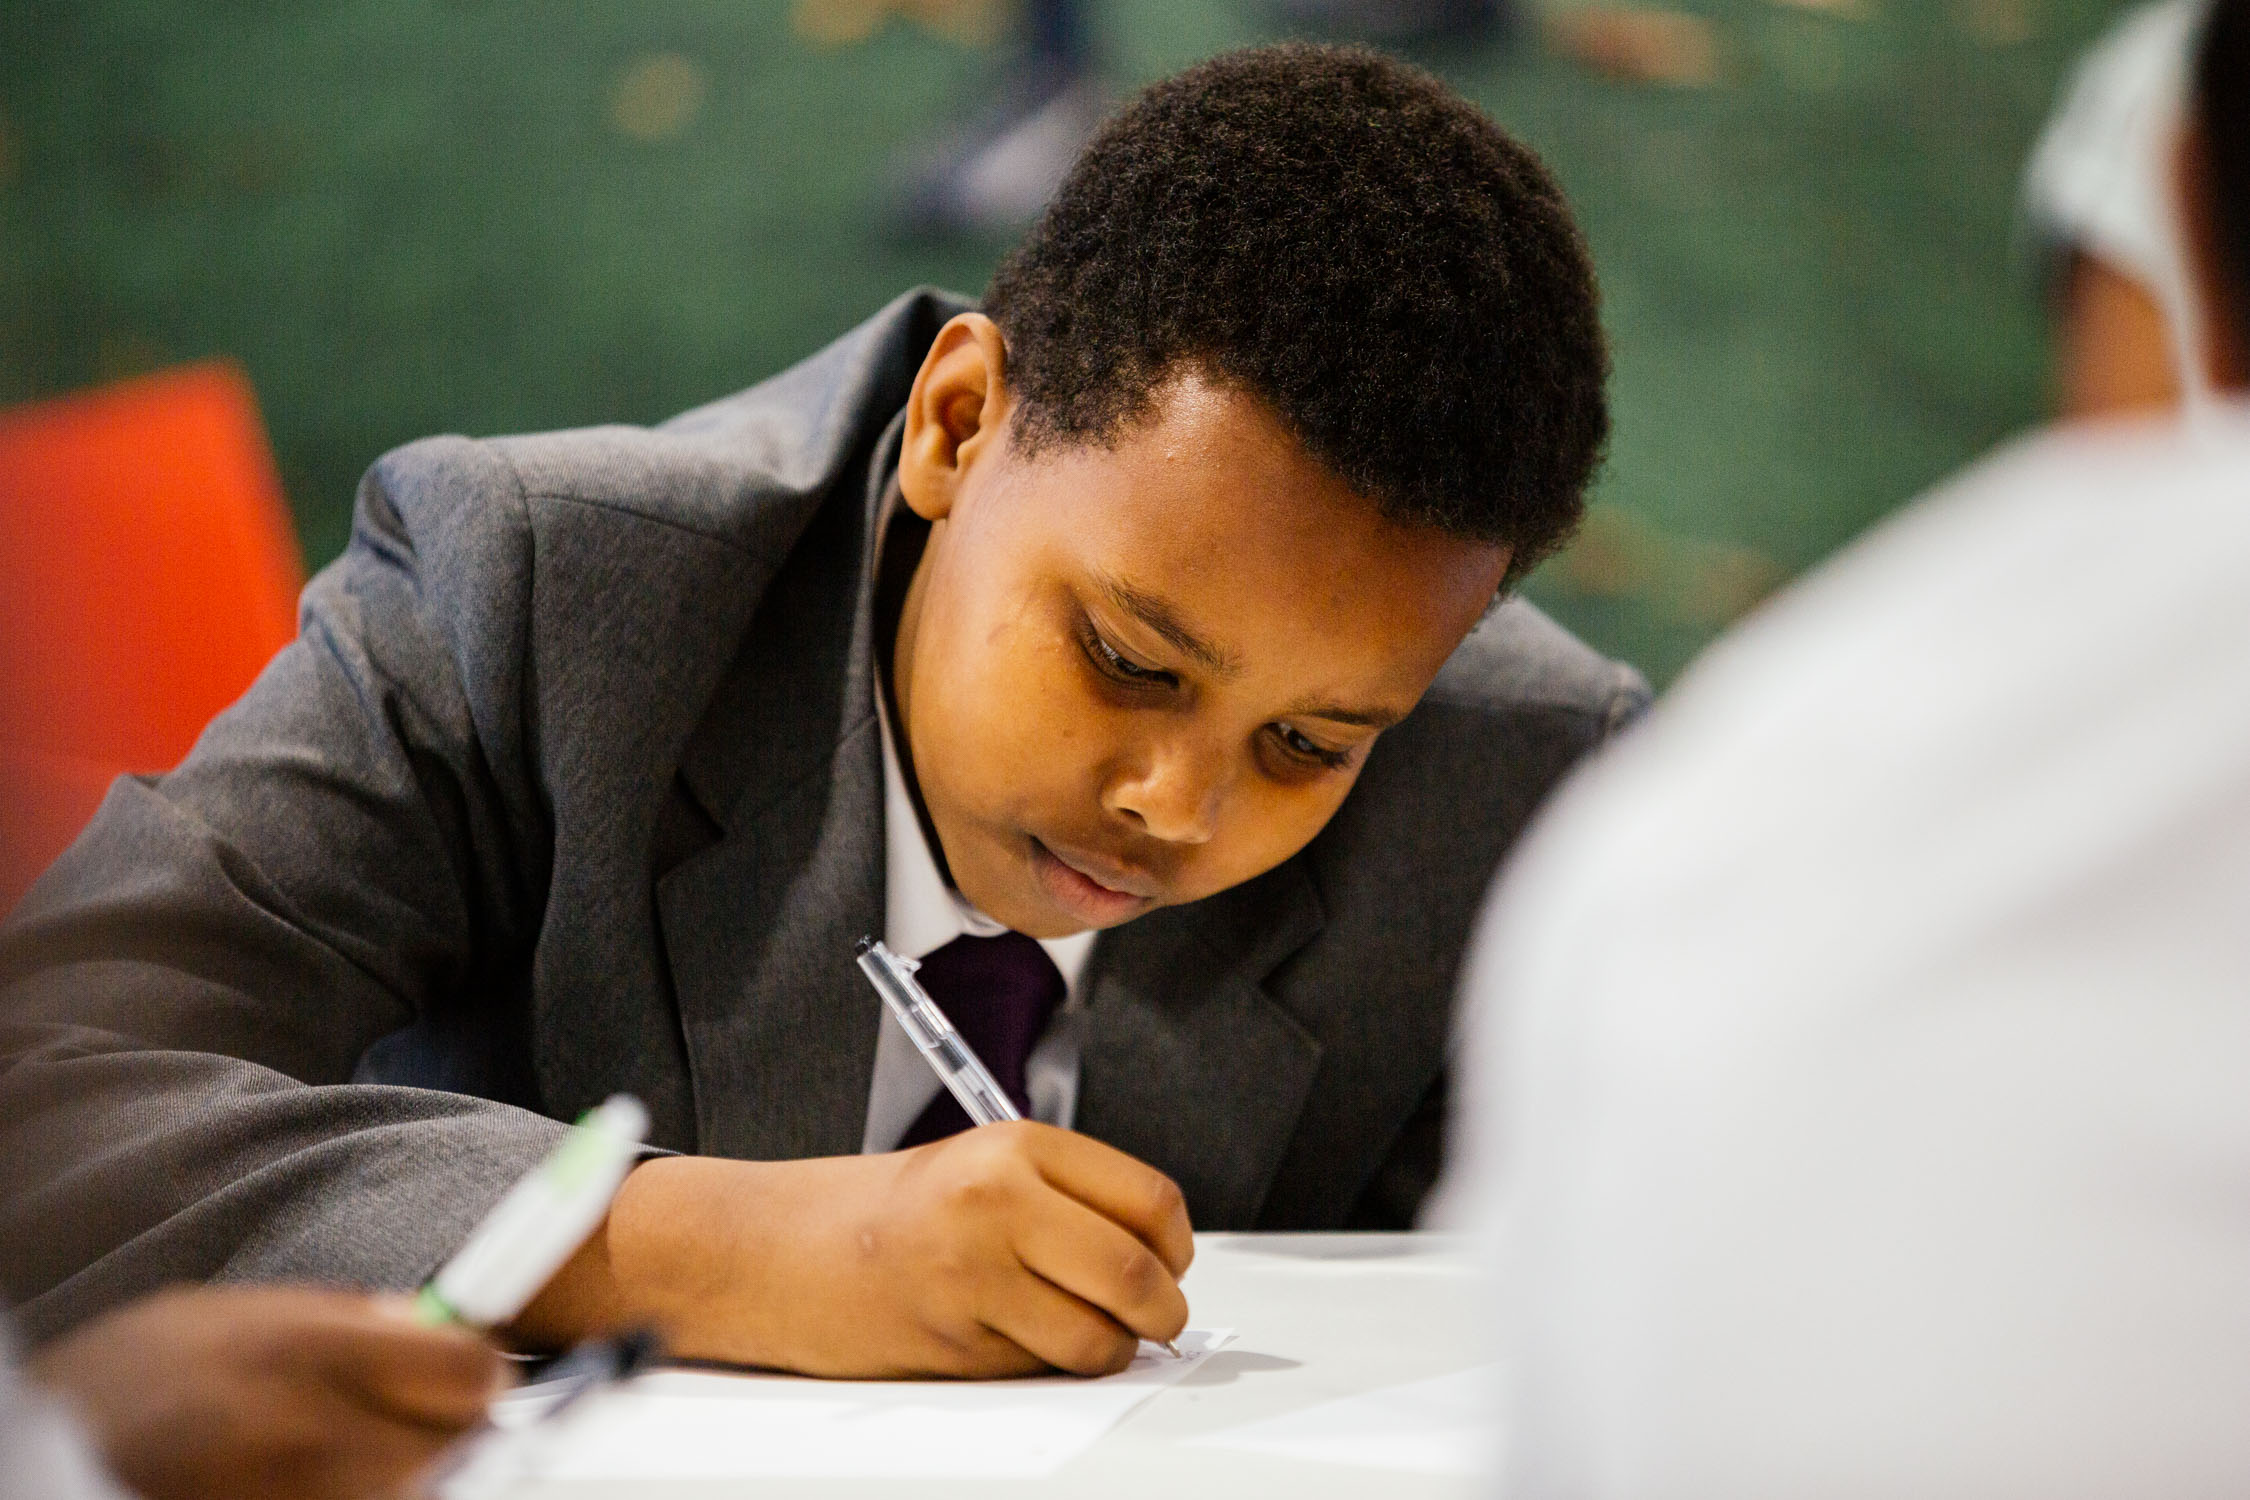 photo of young man concentrating on writing